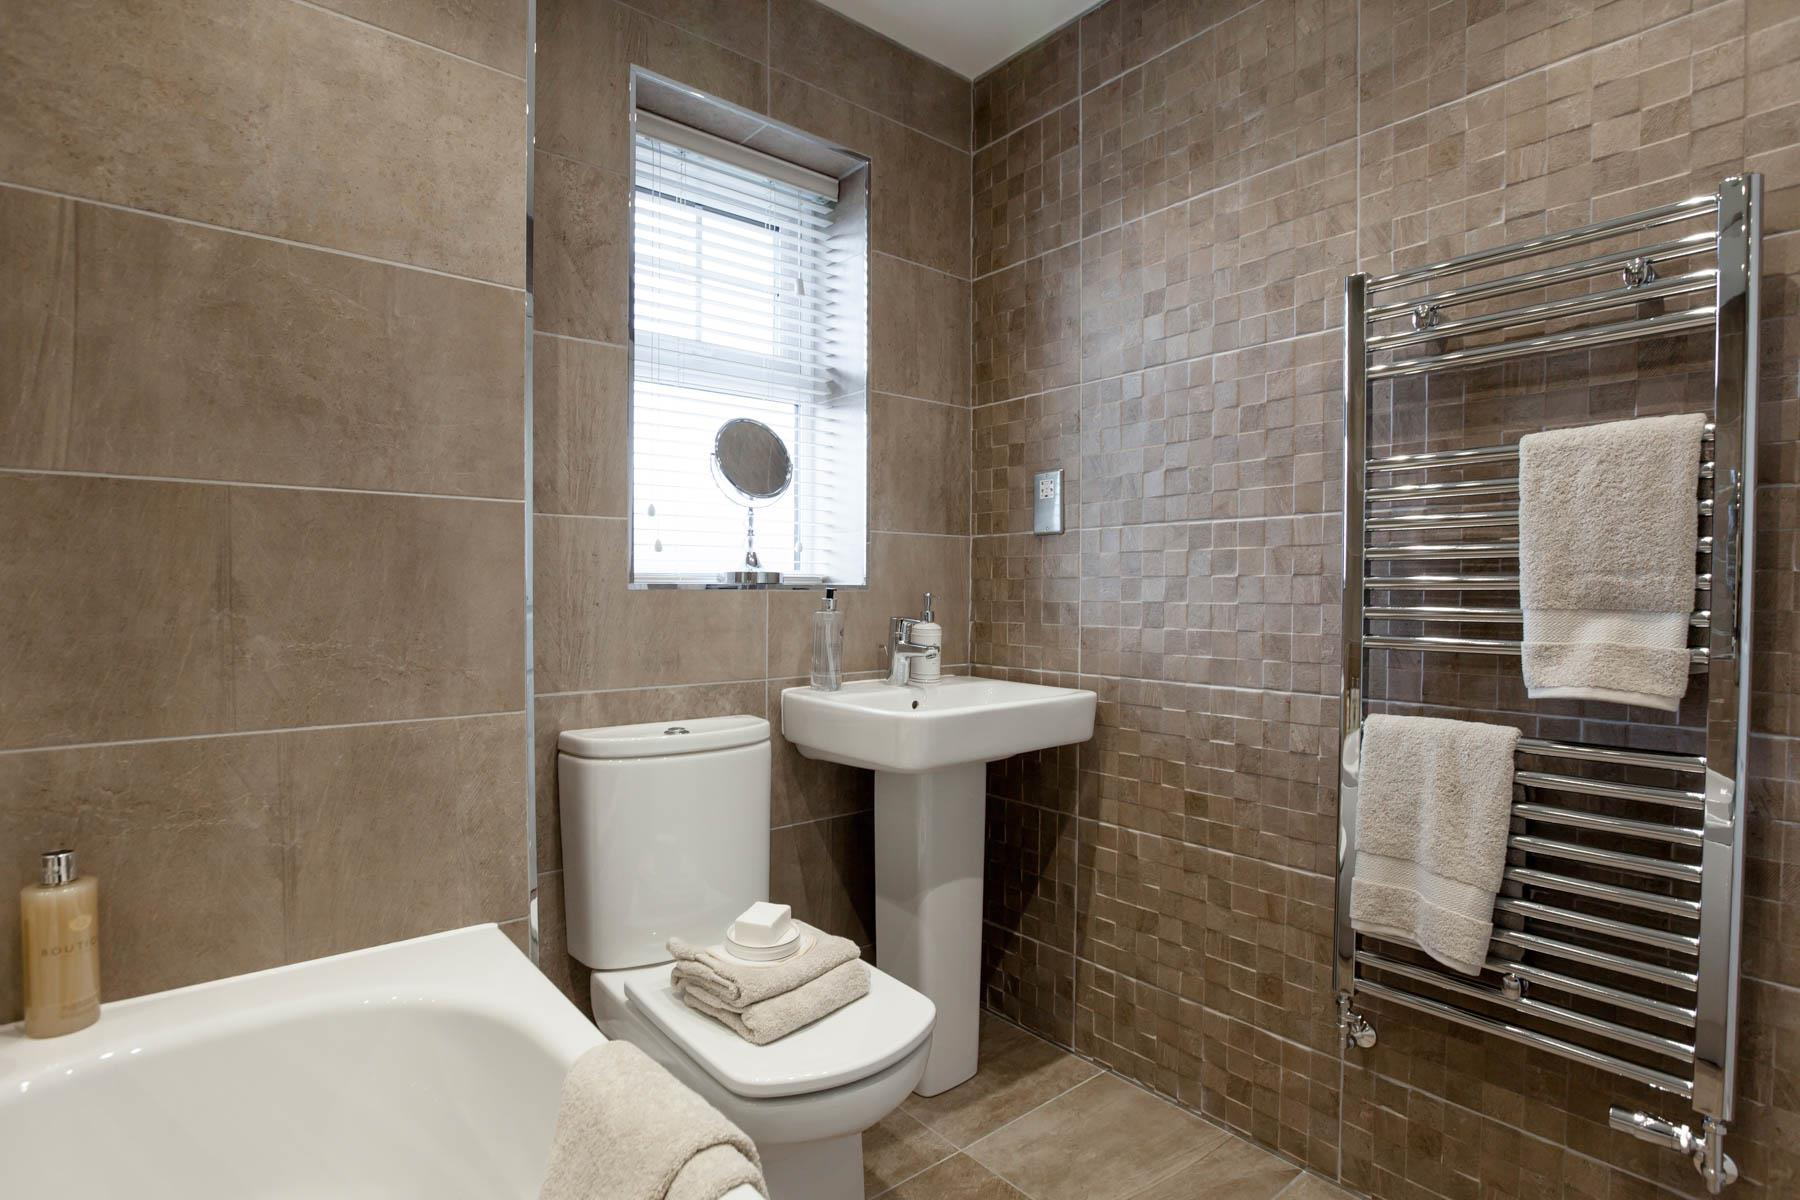 021_SG_Dadford_Bathroom